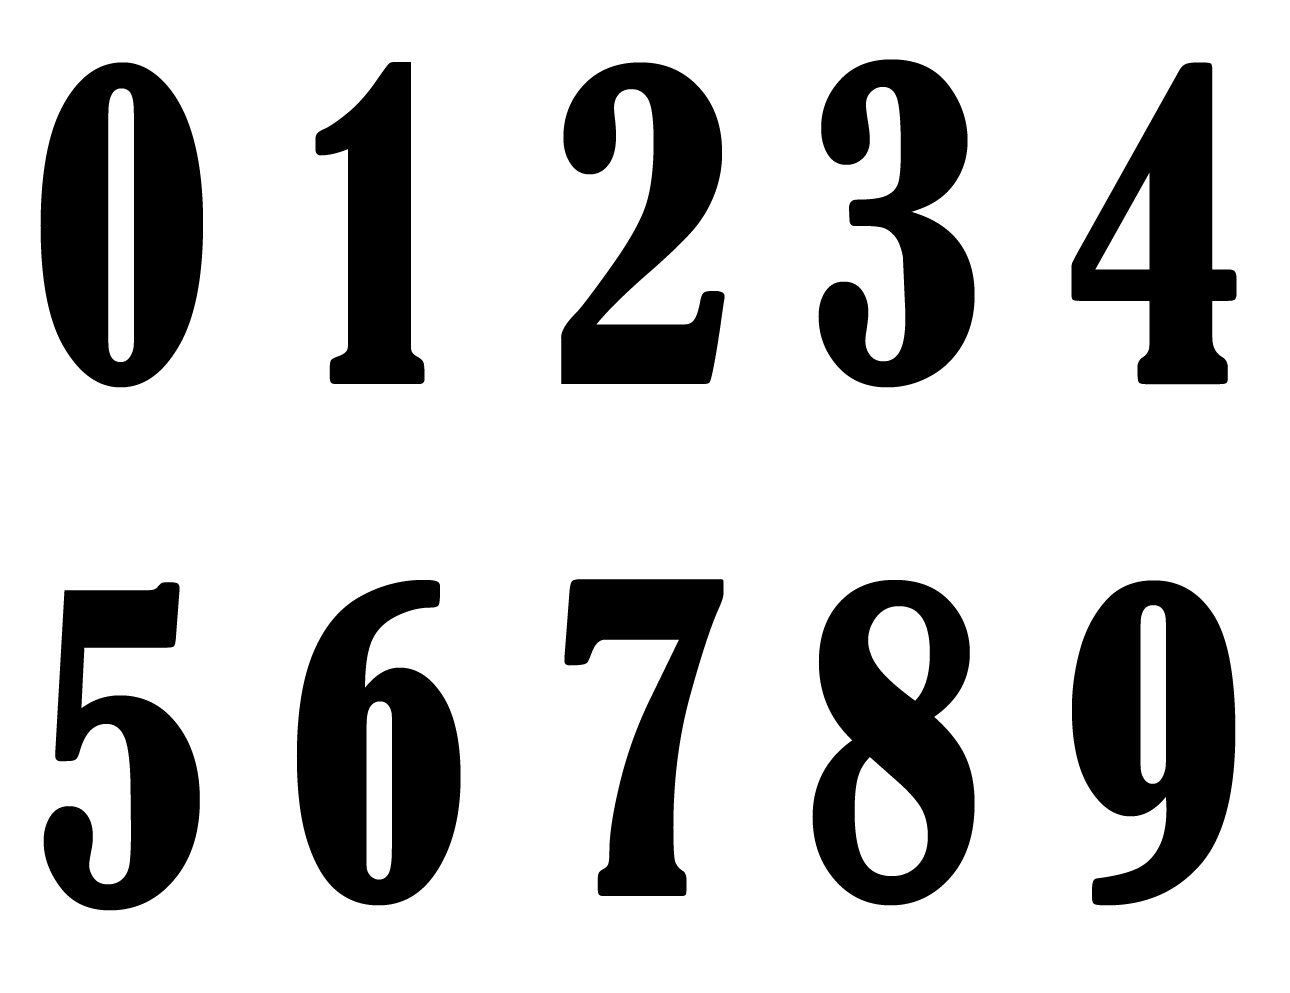 Digits spelling number poetry, Nadazero, Unaone, Bissotwo ...